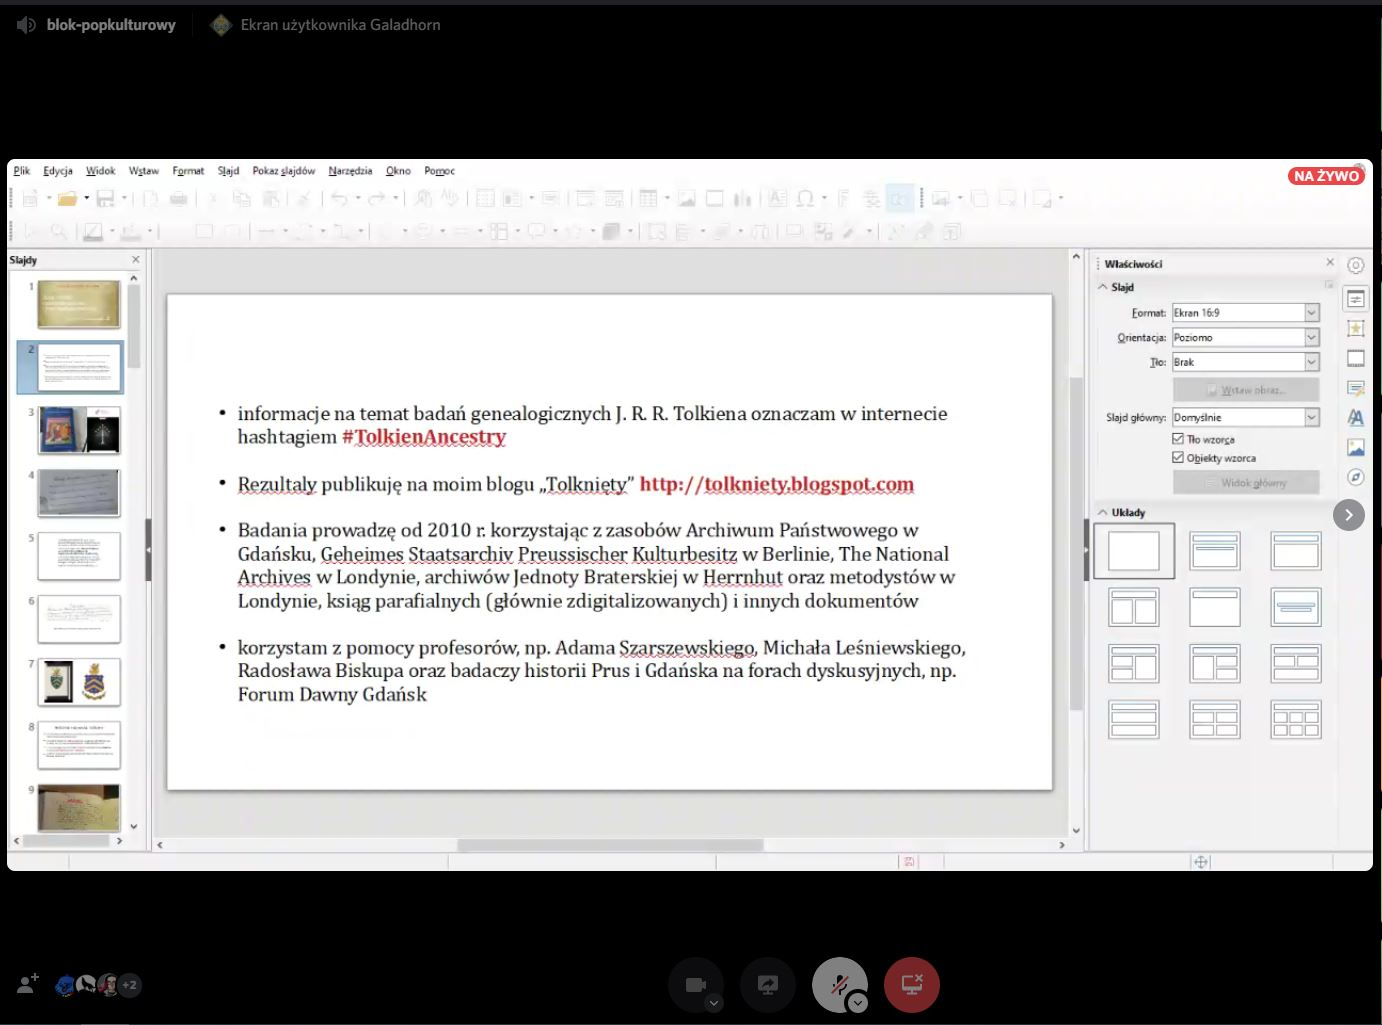 A presentation in powerpoint with a lot of text.